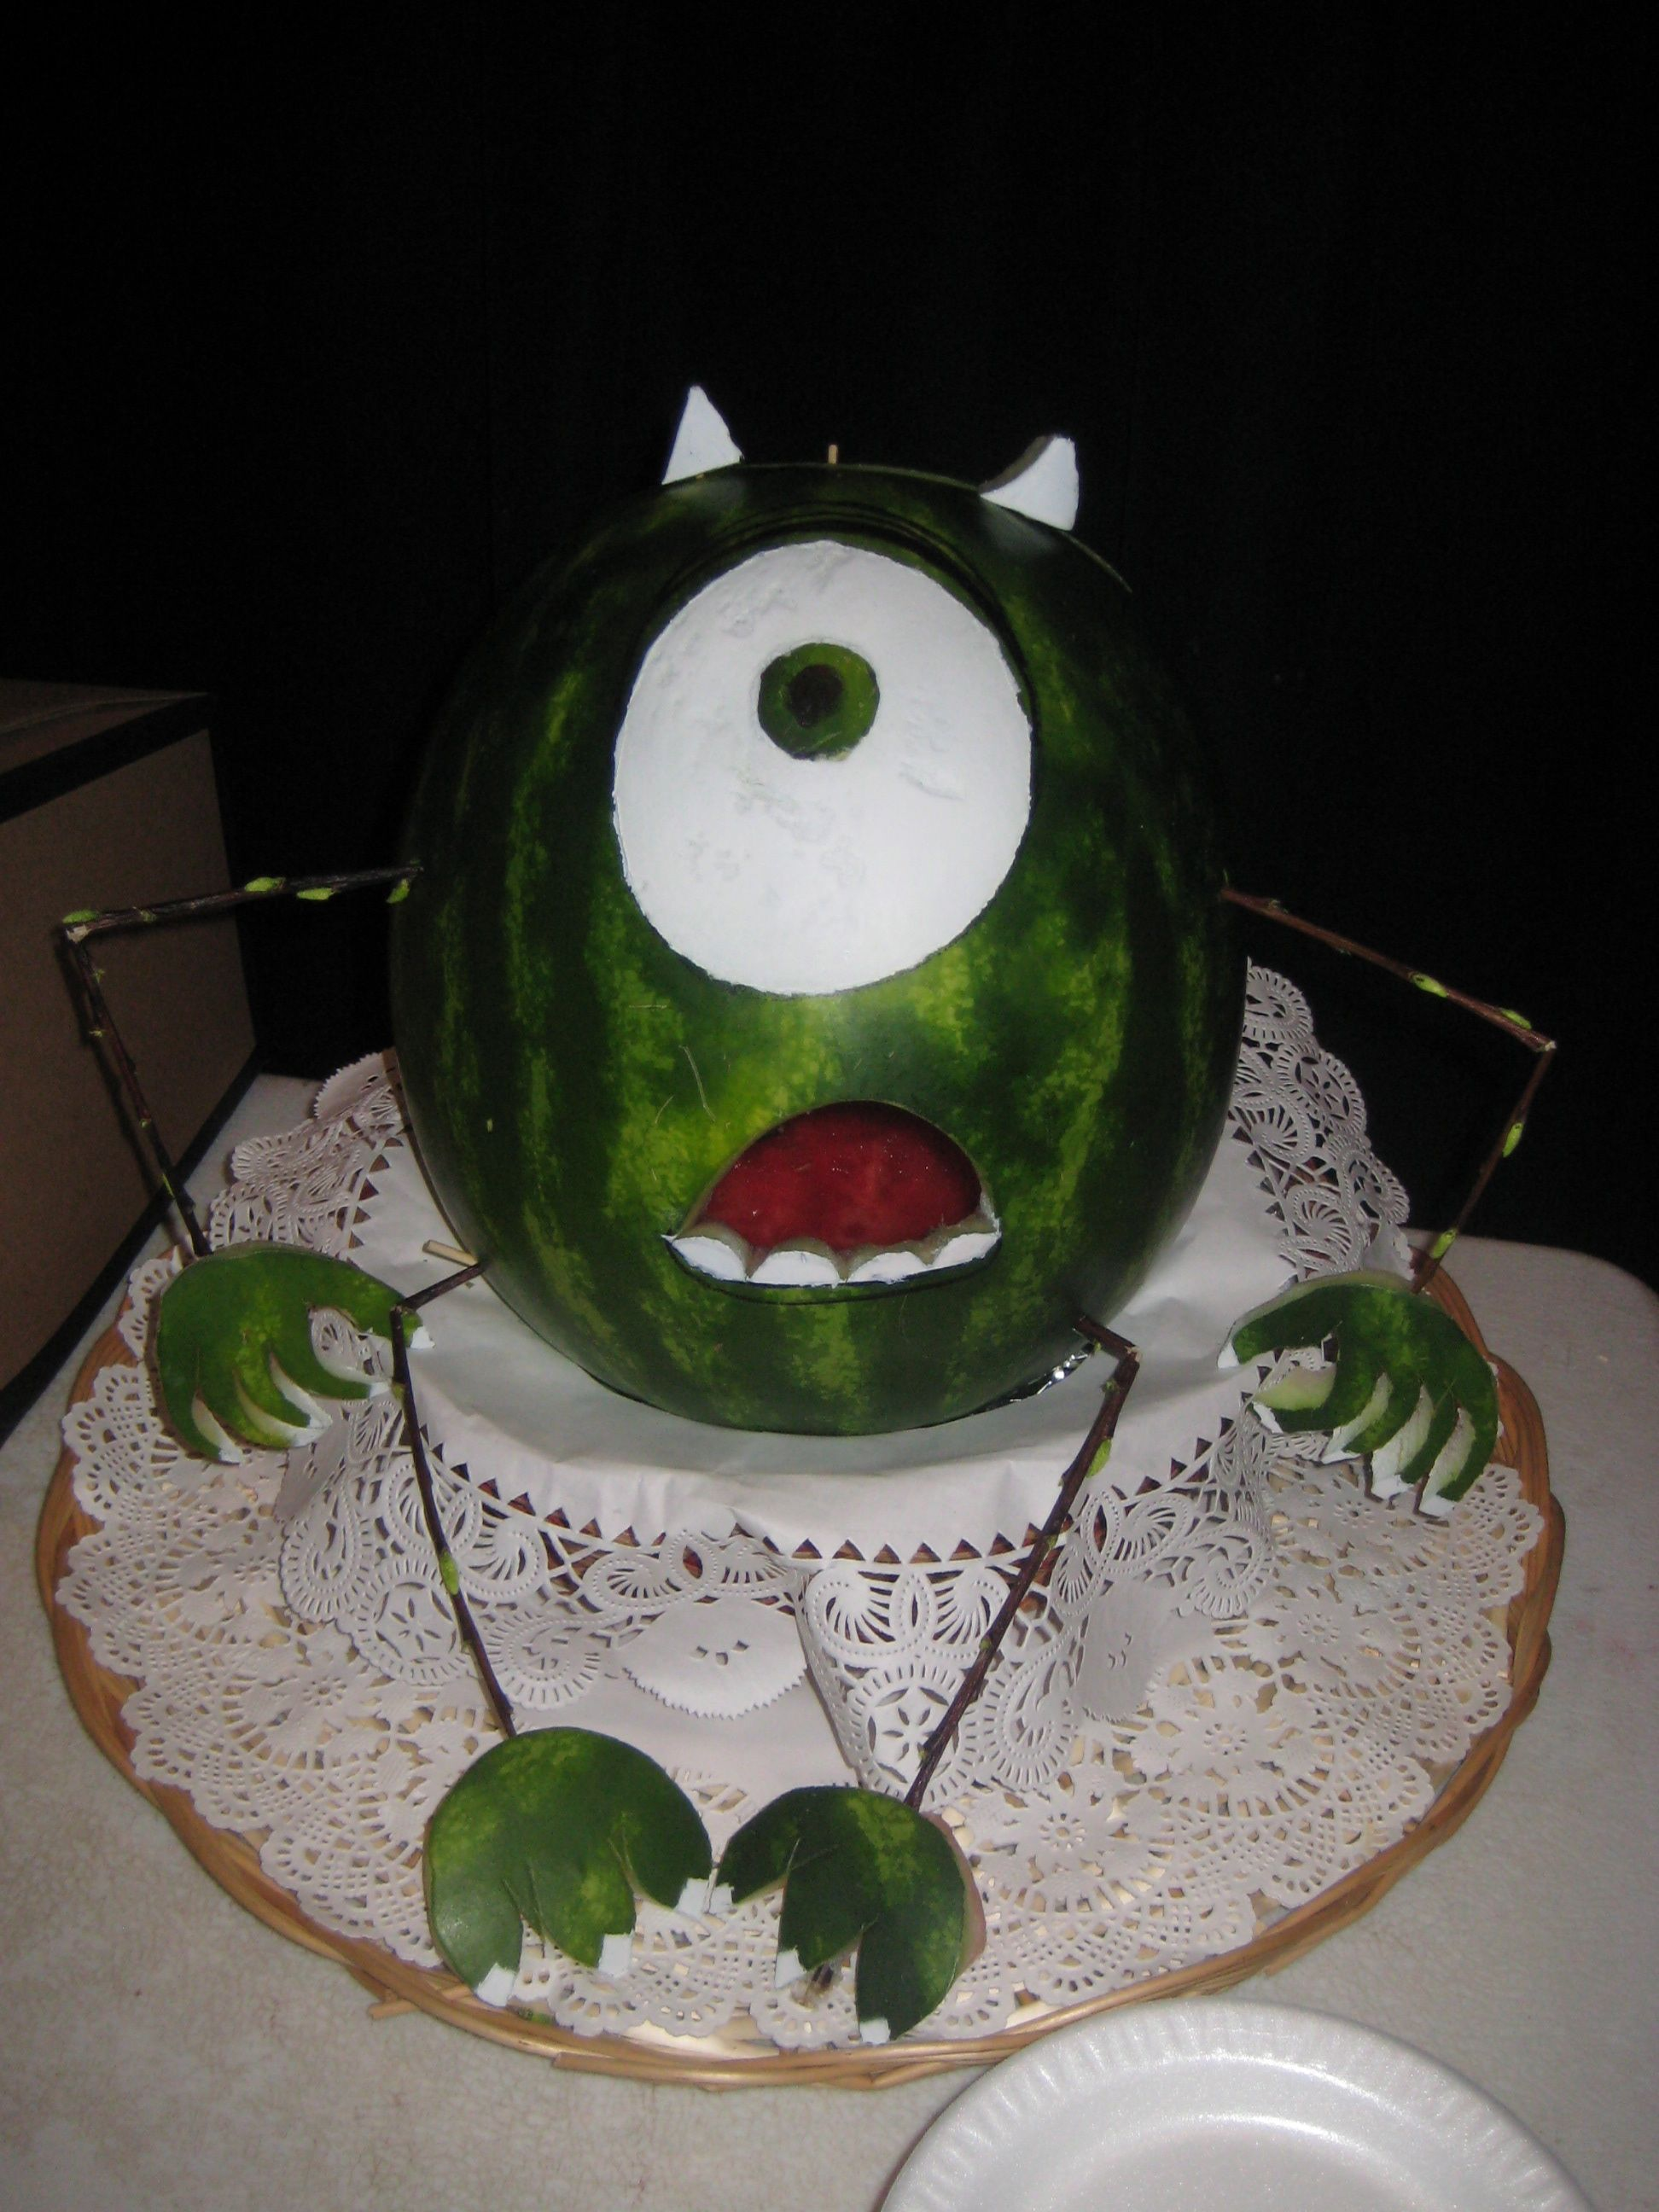 Fruit boat for Monsters Inc party